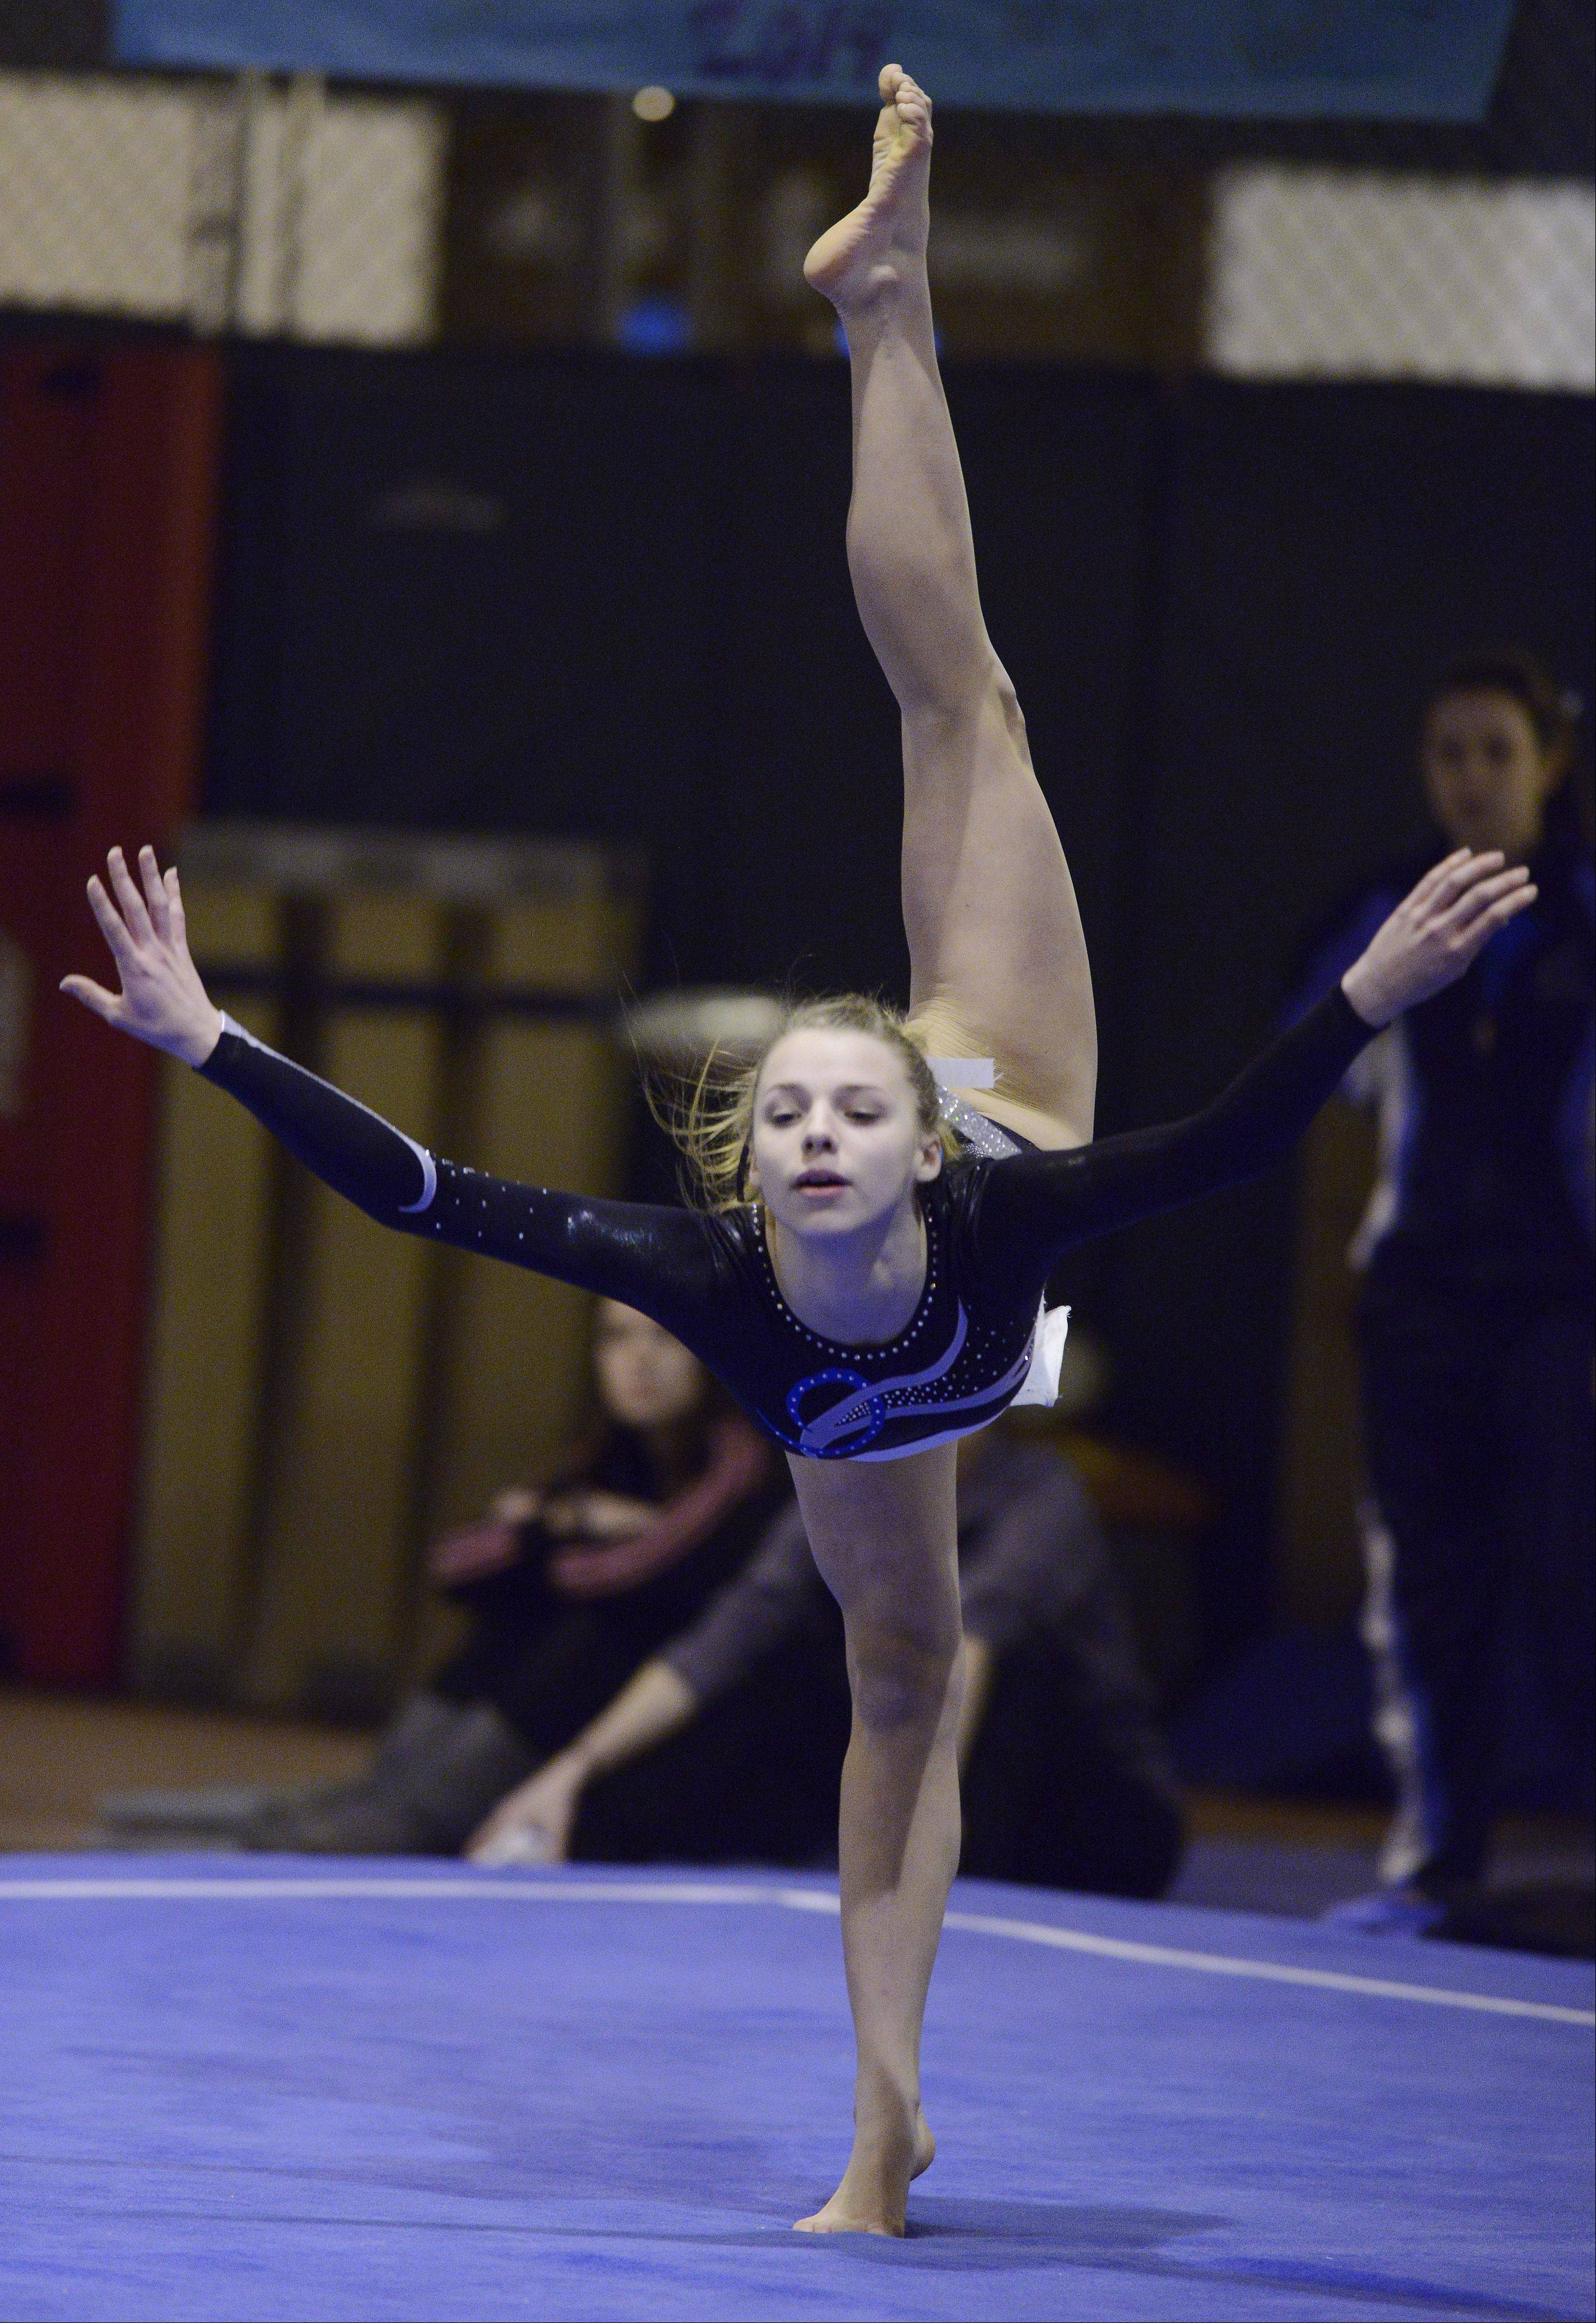 Prospect's Olivia Gonzalez competes on the floor exercise during Wednesday's meet with Buffalo Grove and host Elk Grove.